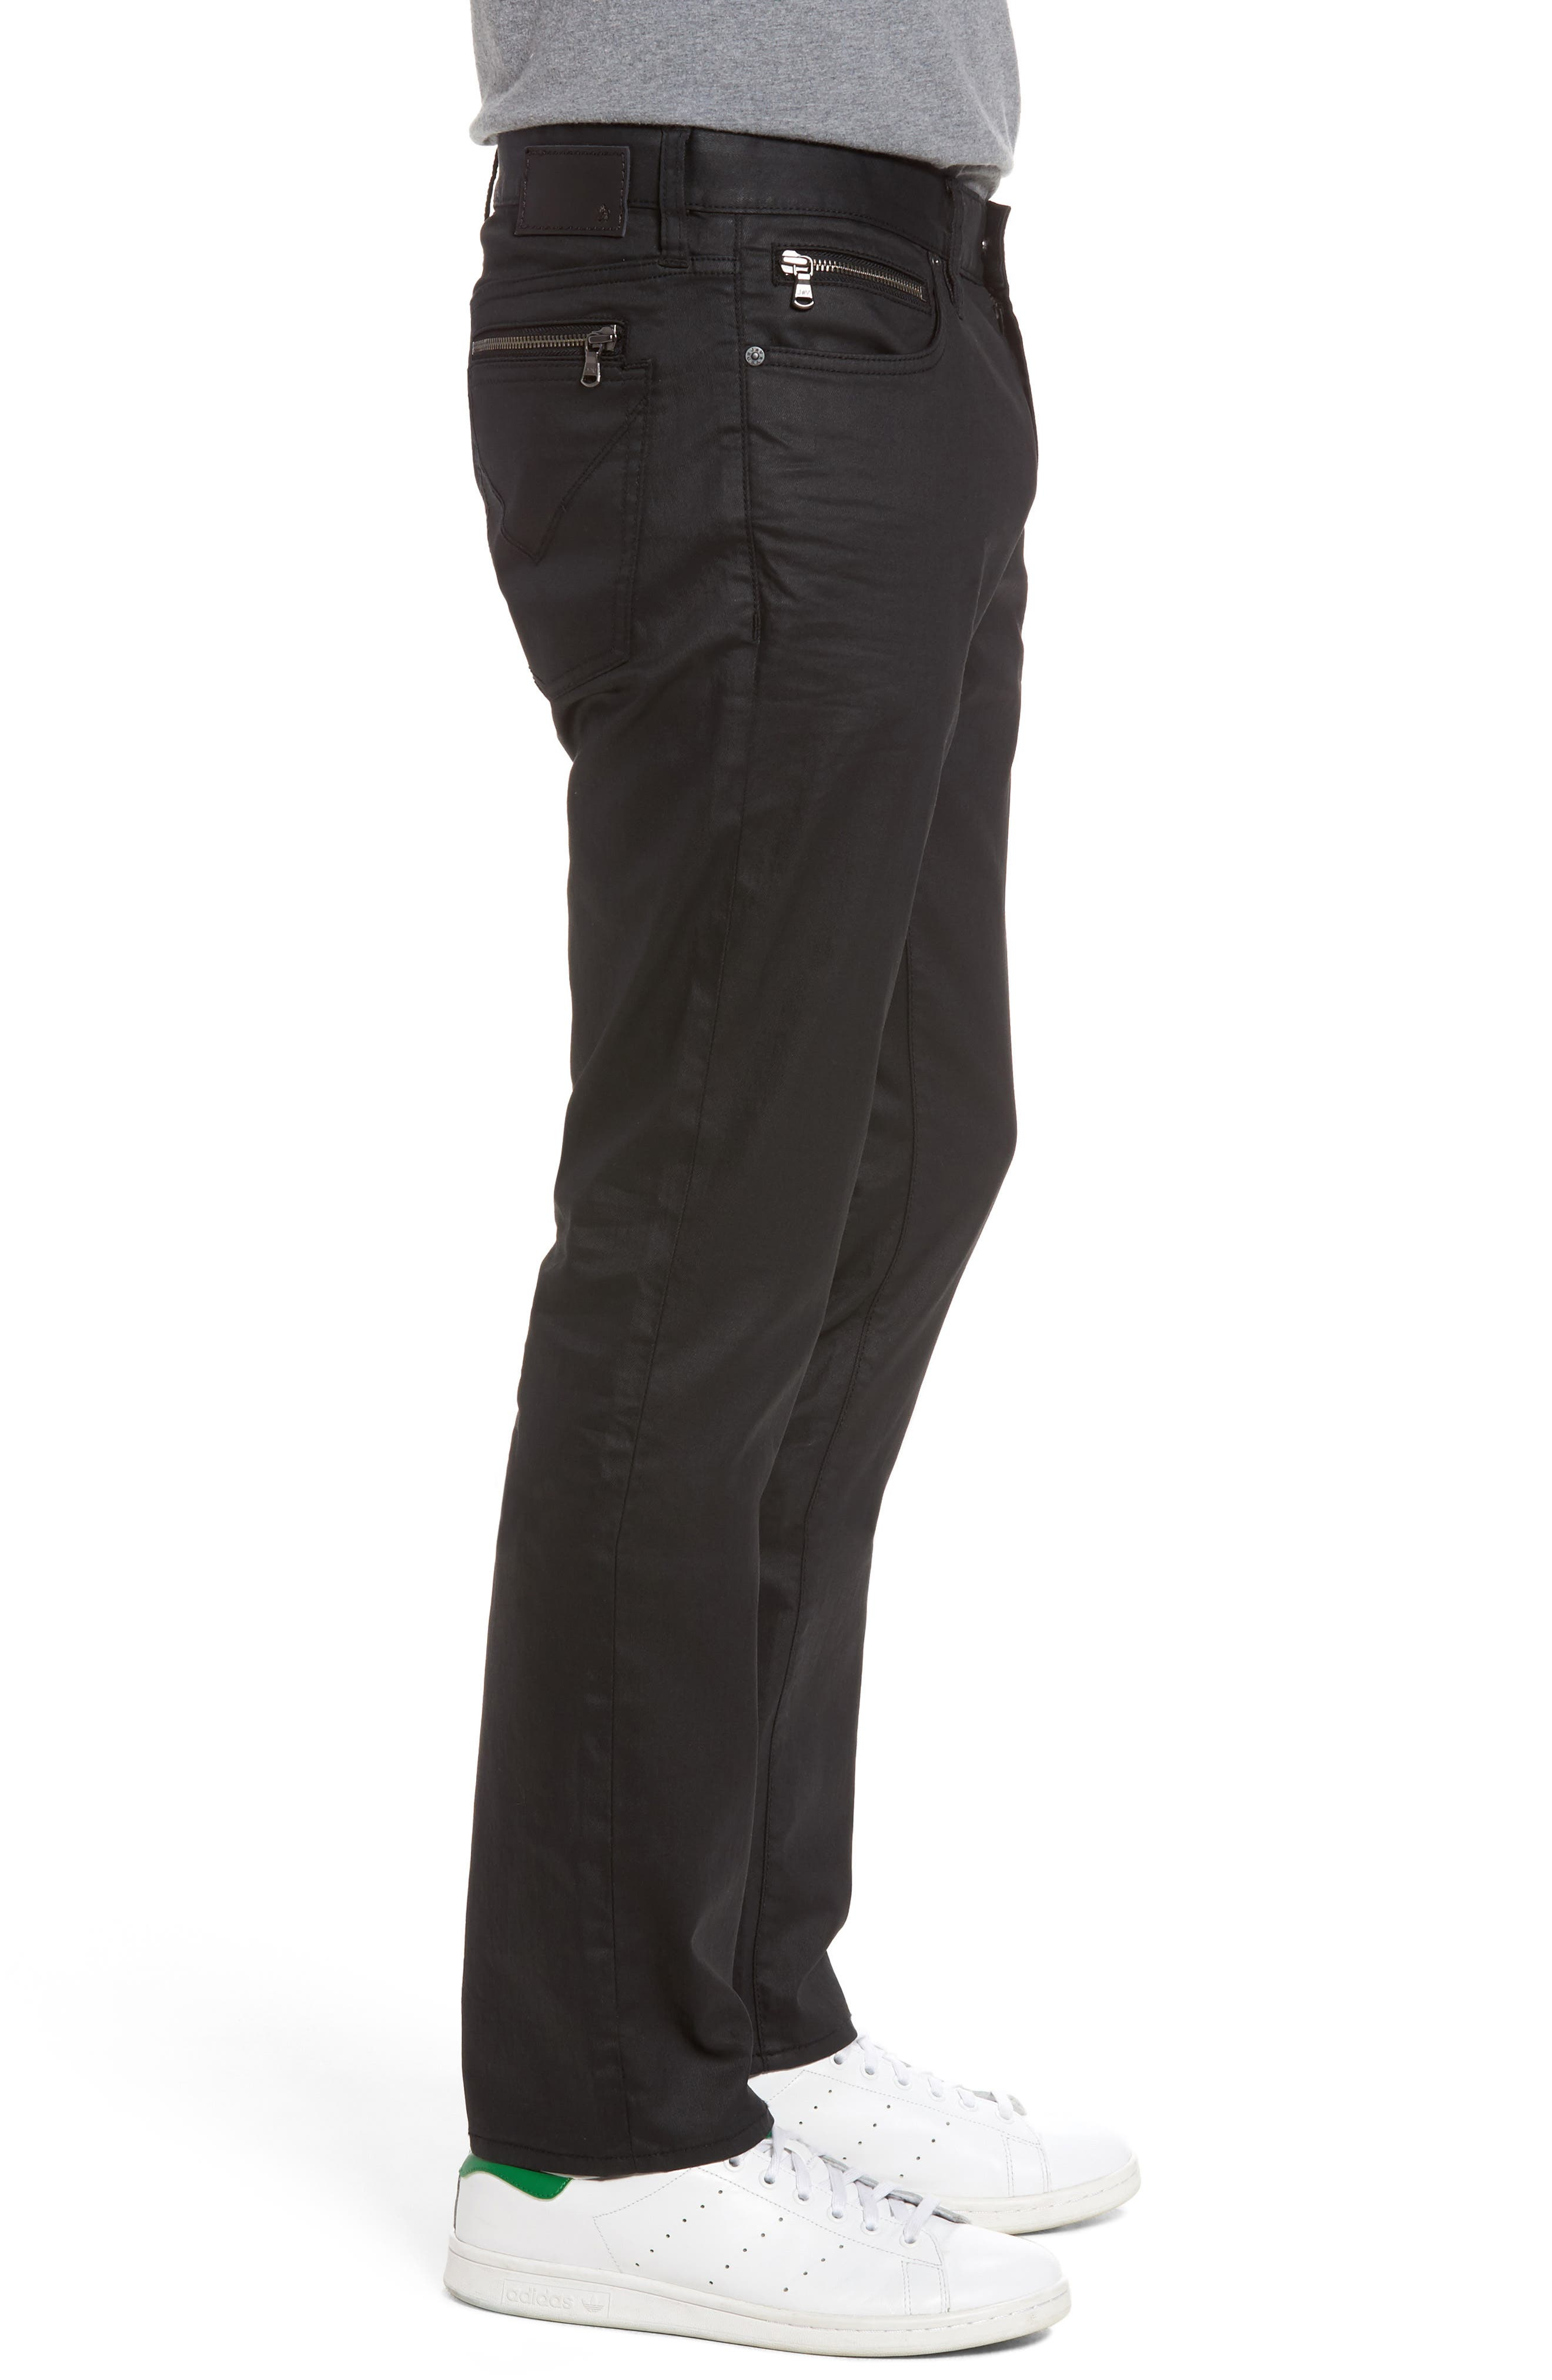 Wight Skinny Jeans,                             Alternate thumbnail 11, color,